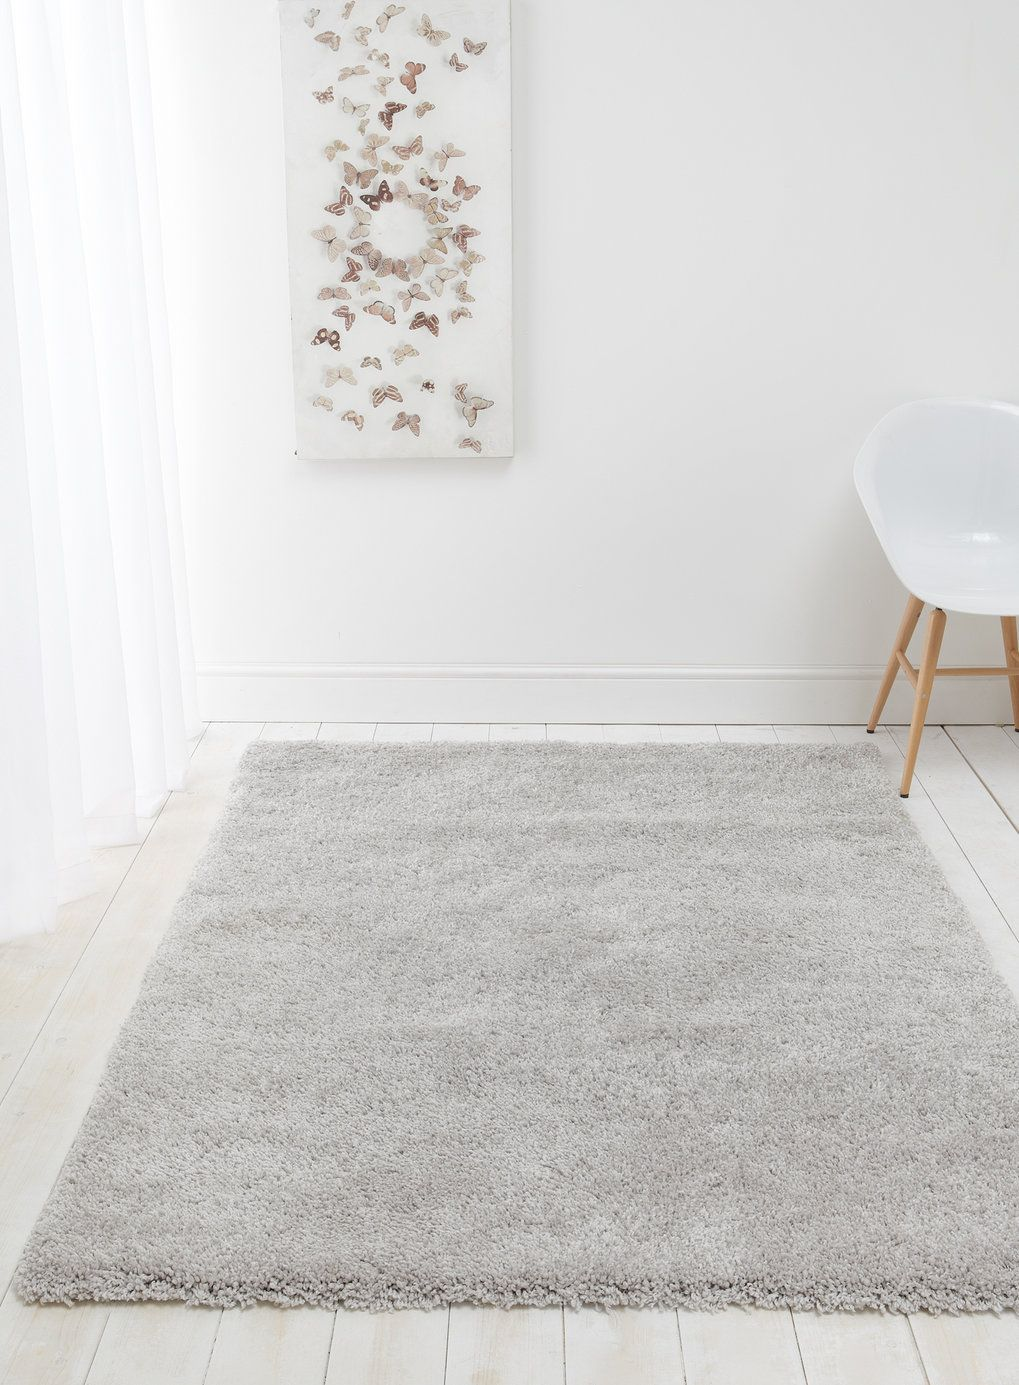 Light Grey Supersoft Shaggy Rug 140x200cm Rugs In Living Room Redecorate Bedroom Shaggy Rug